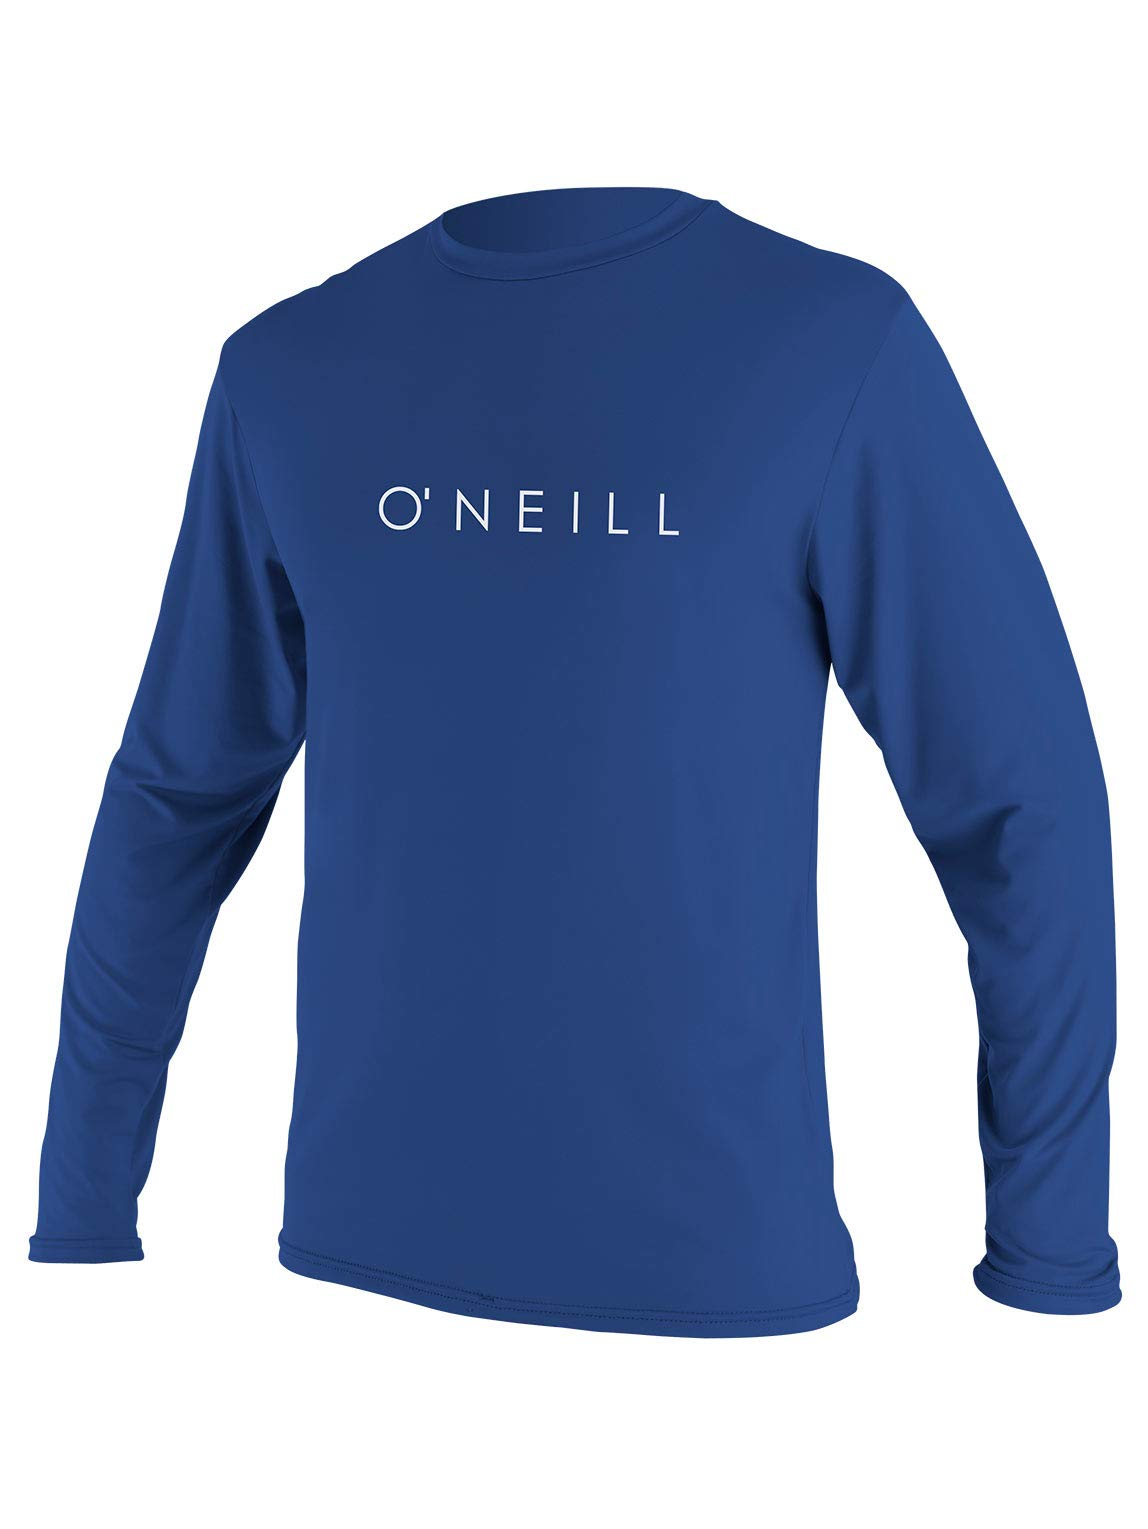 O'Neill Youth Basic Skins UPF 30 + Long Sleeve Sun Shirt, Pacific, 4